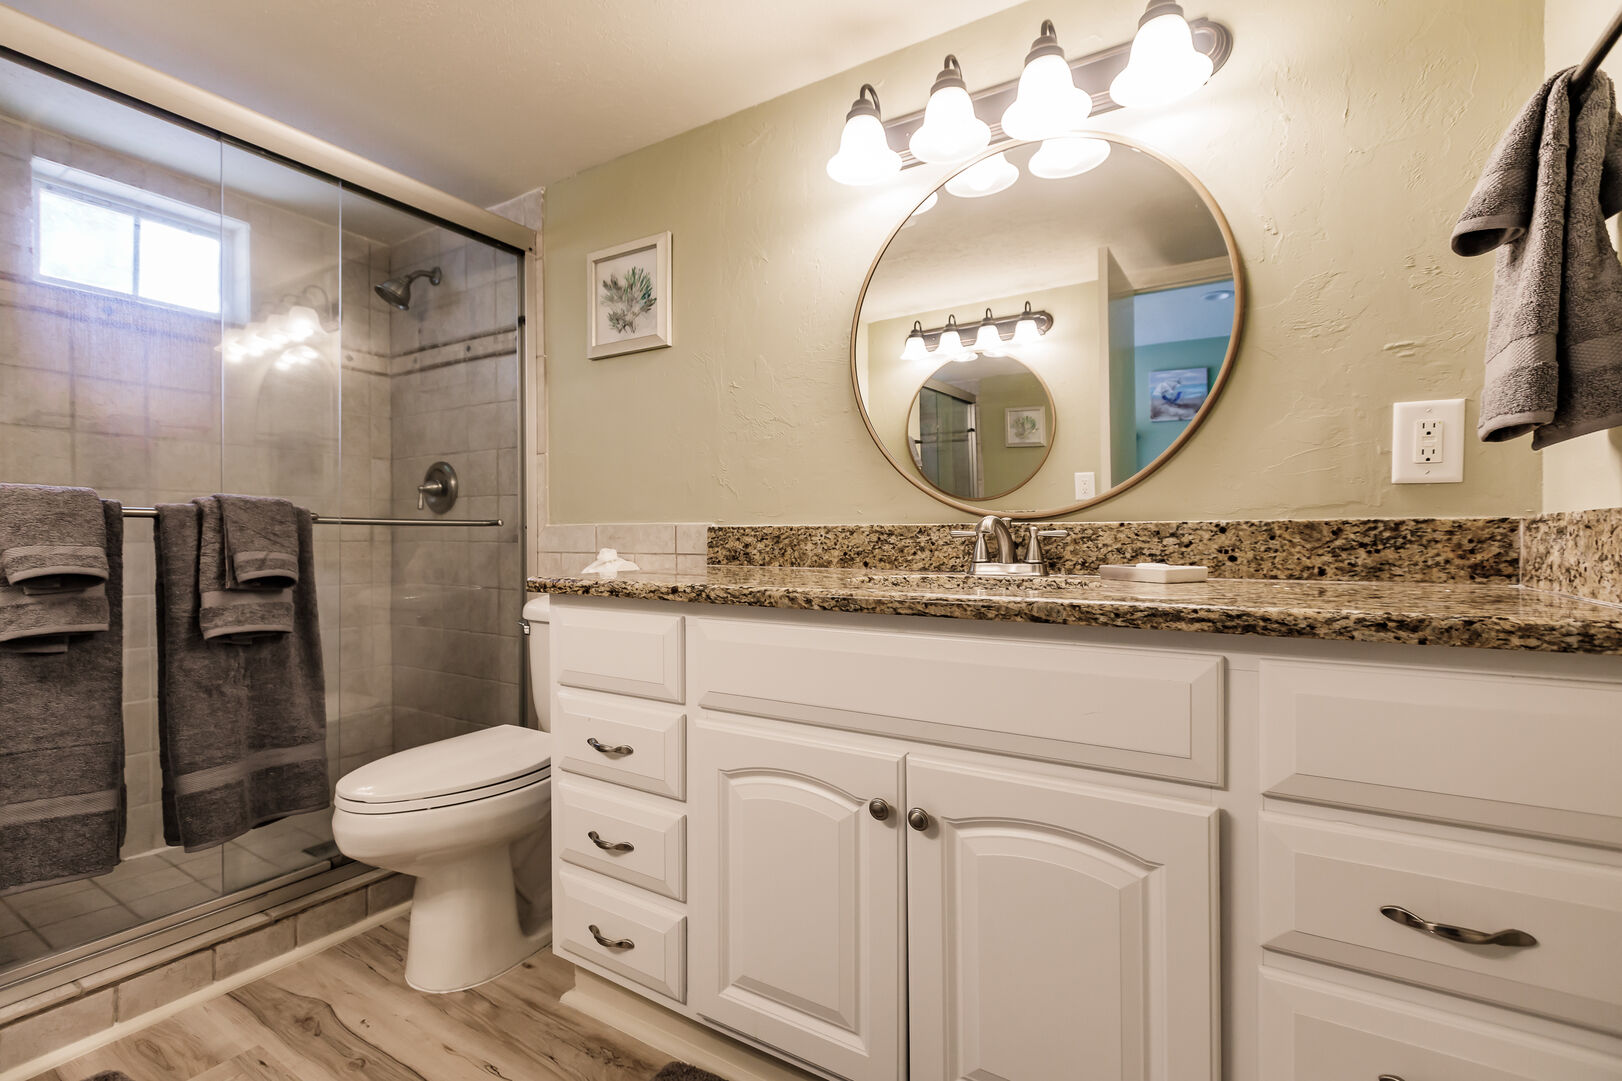 Bathroom and Vanity in Beach Paradise Private Beach House Rental in Florida